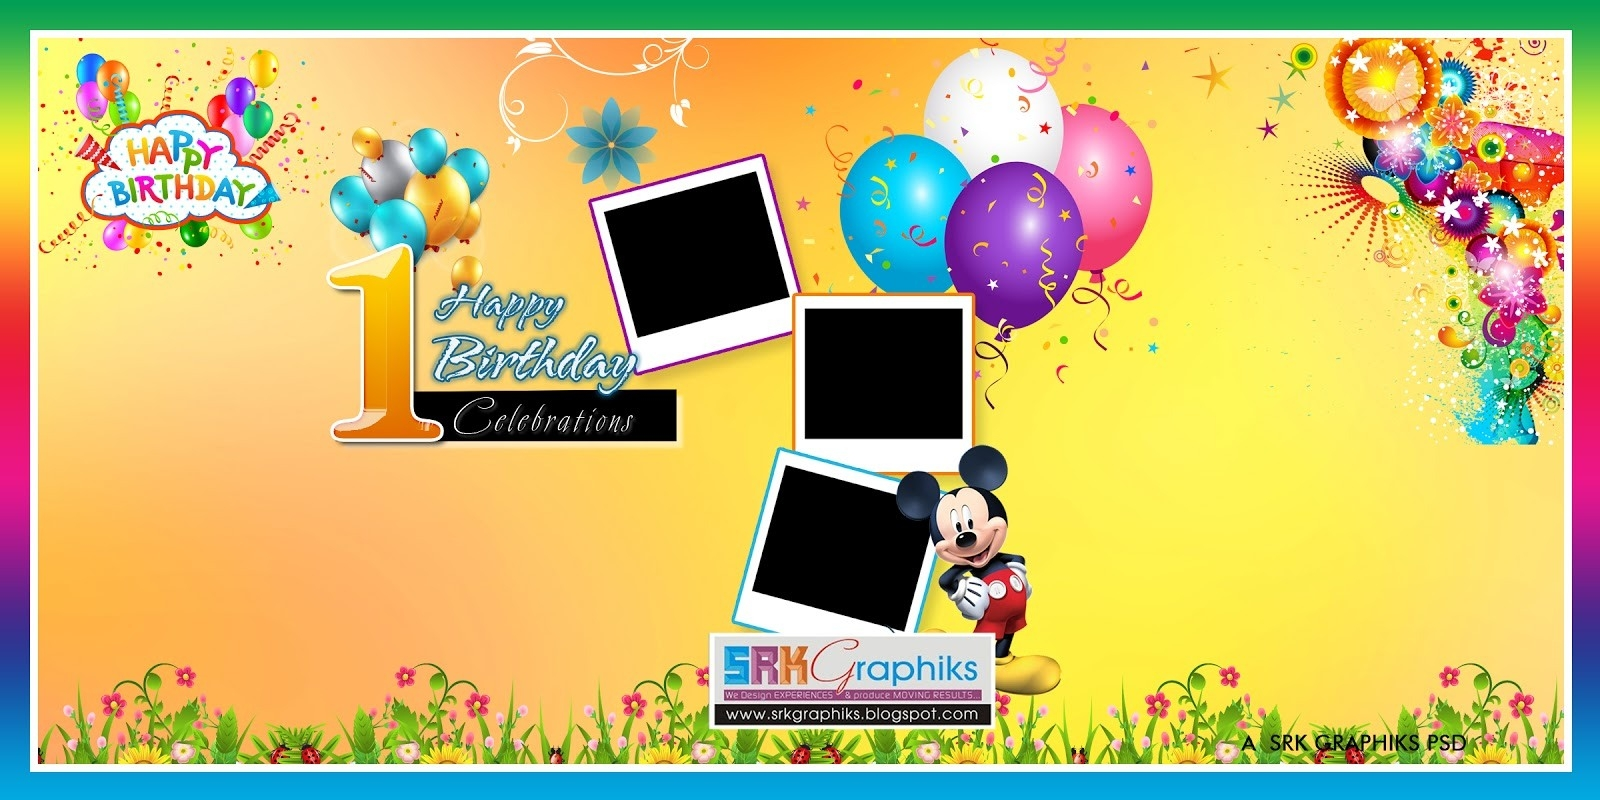 birthday flex banner background design ; creative-birthday-flex-banner-psd-template-free-downloads-srk-inside-birthday-flex-banner-background-design